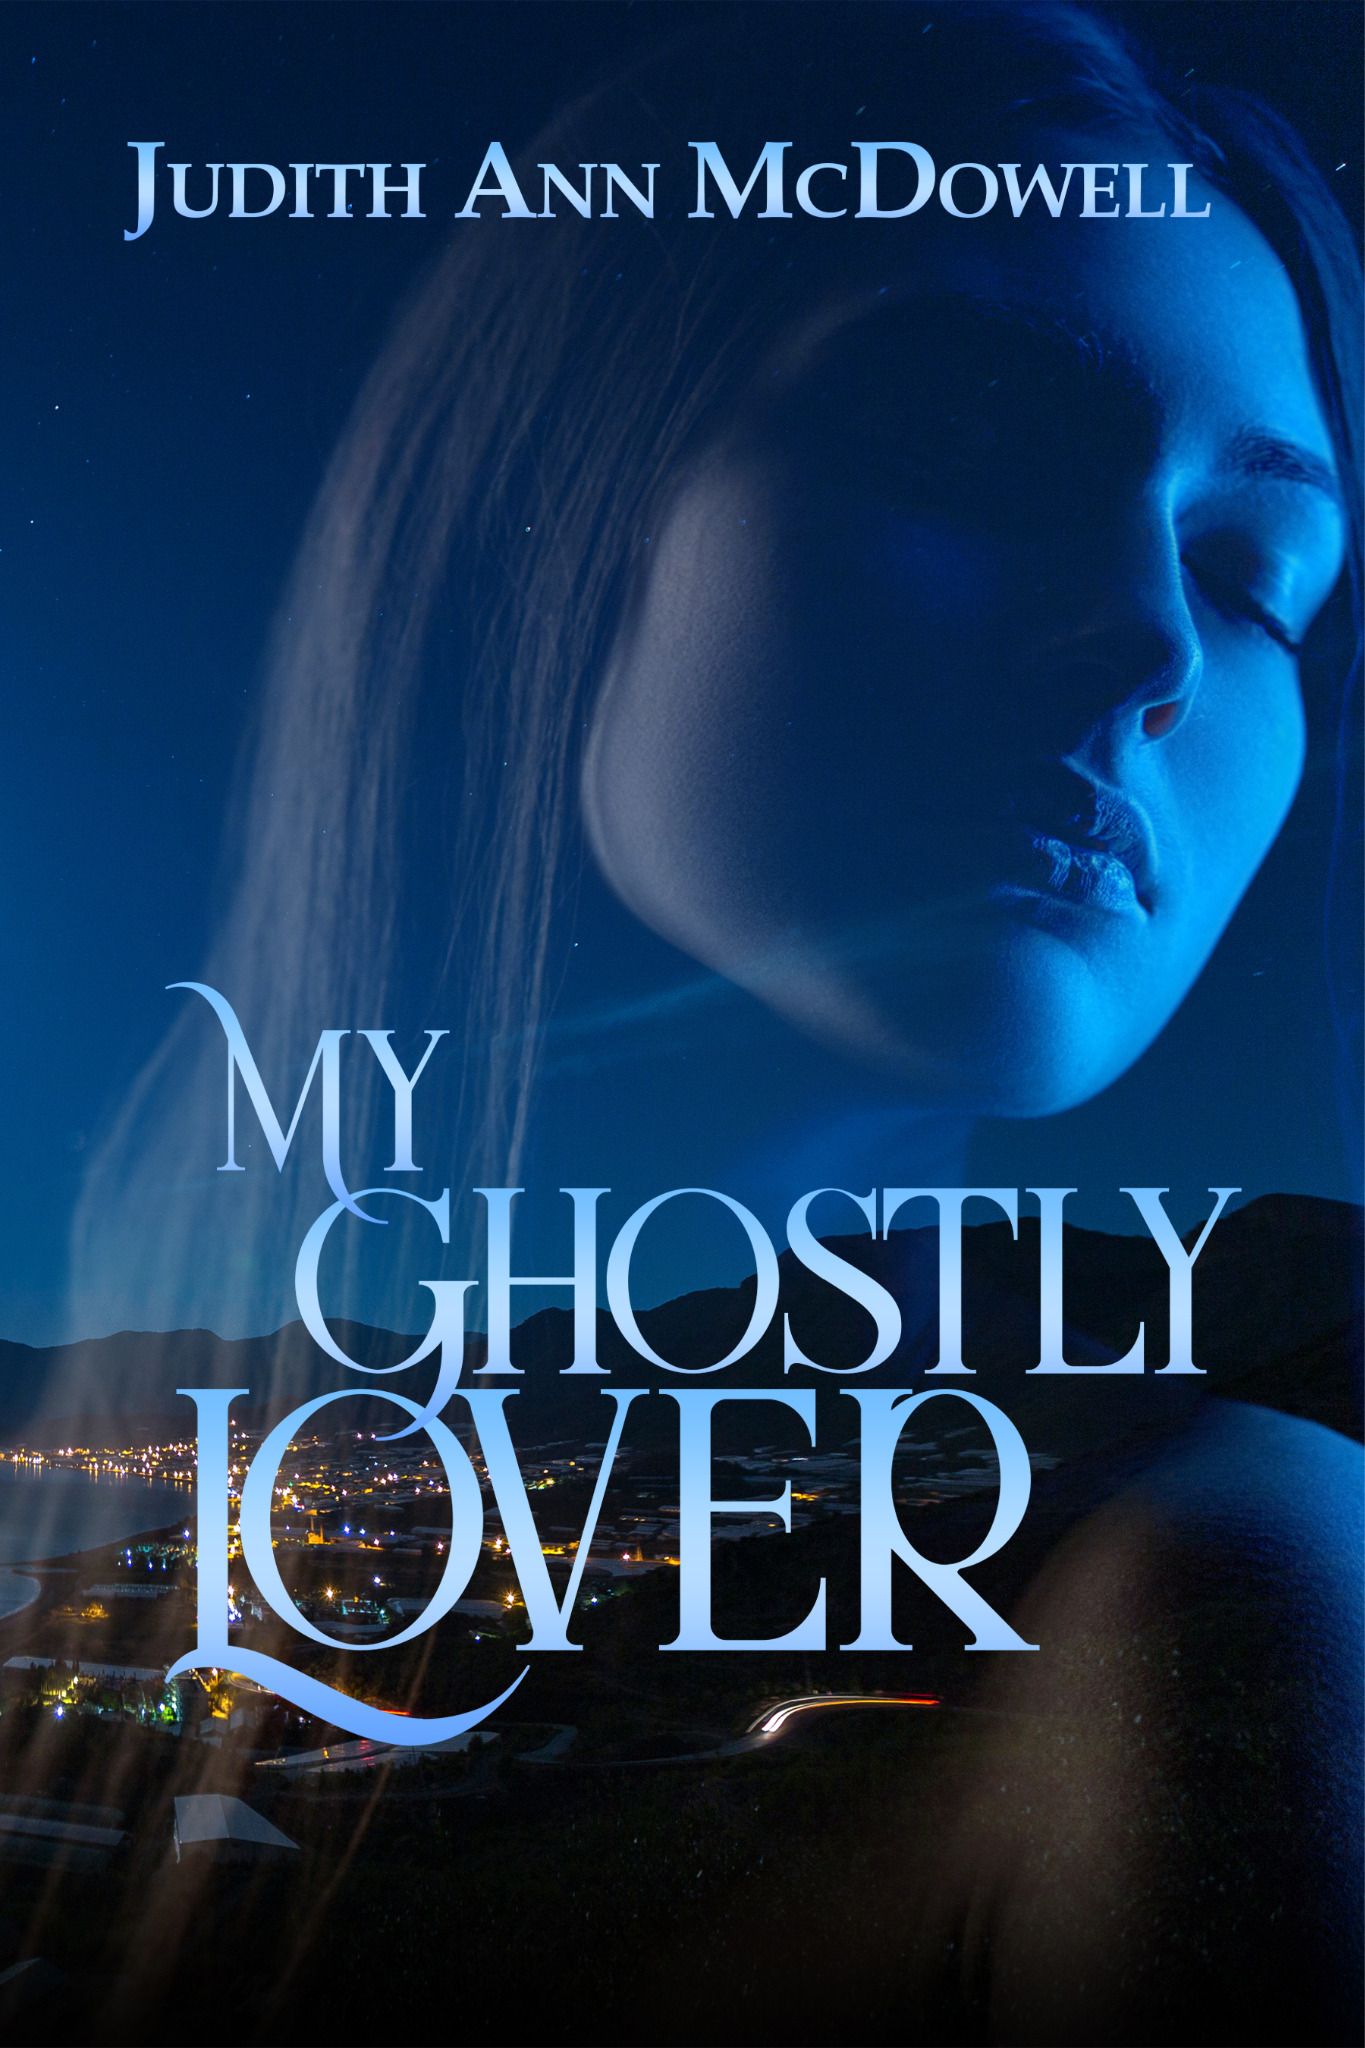 My Ghostly Lover